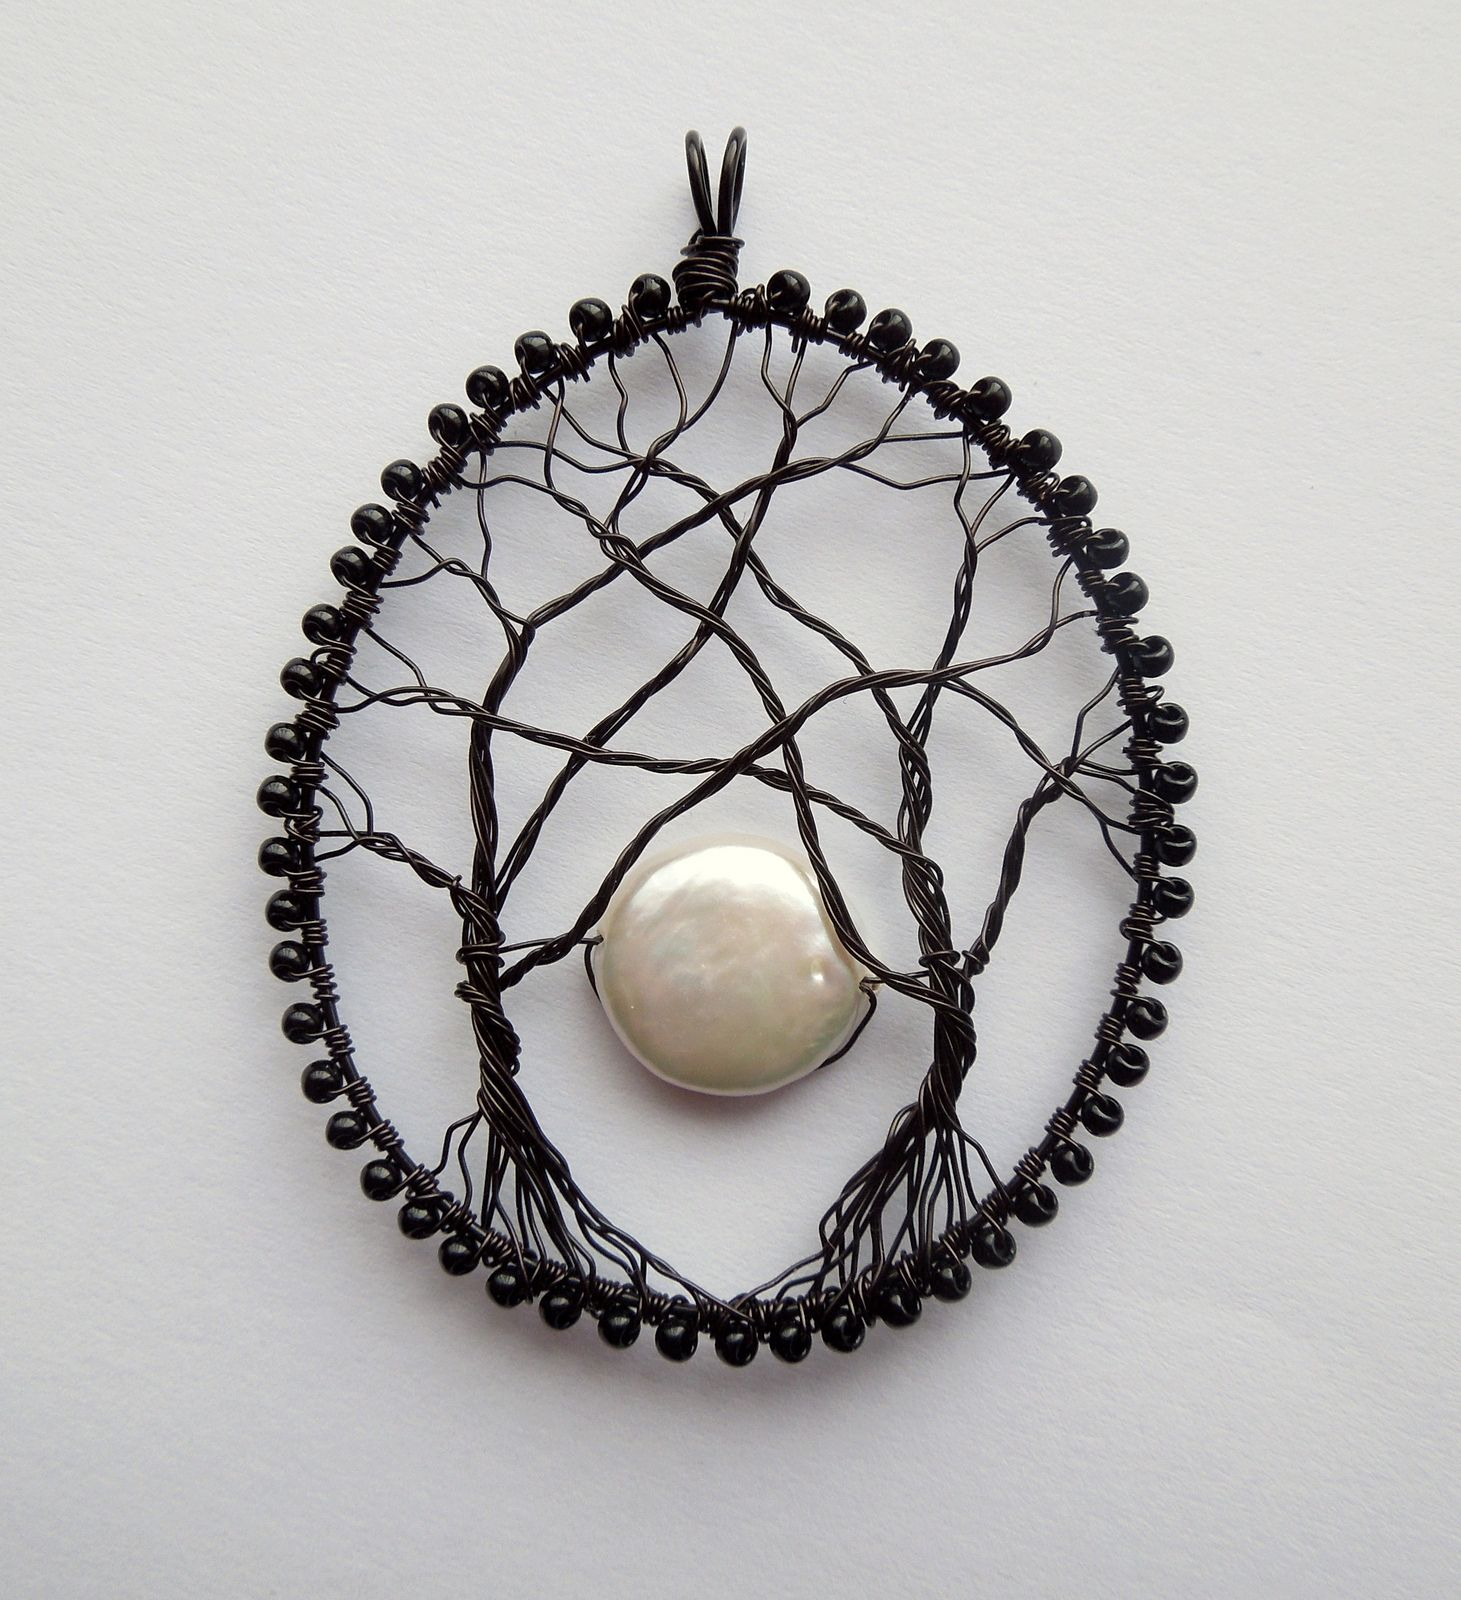 Moonrise (sold) | Craft, Wire wrapping and Jewelry ideas